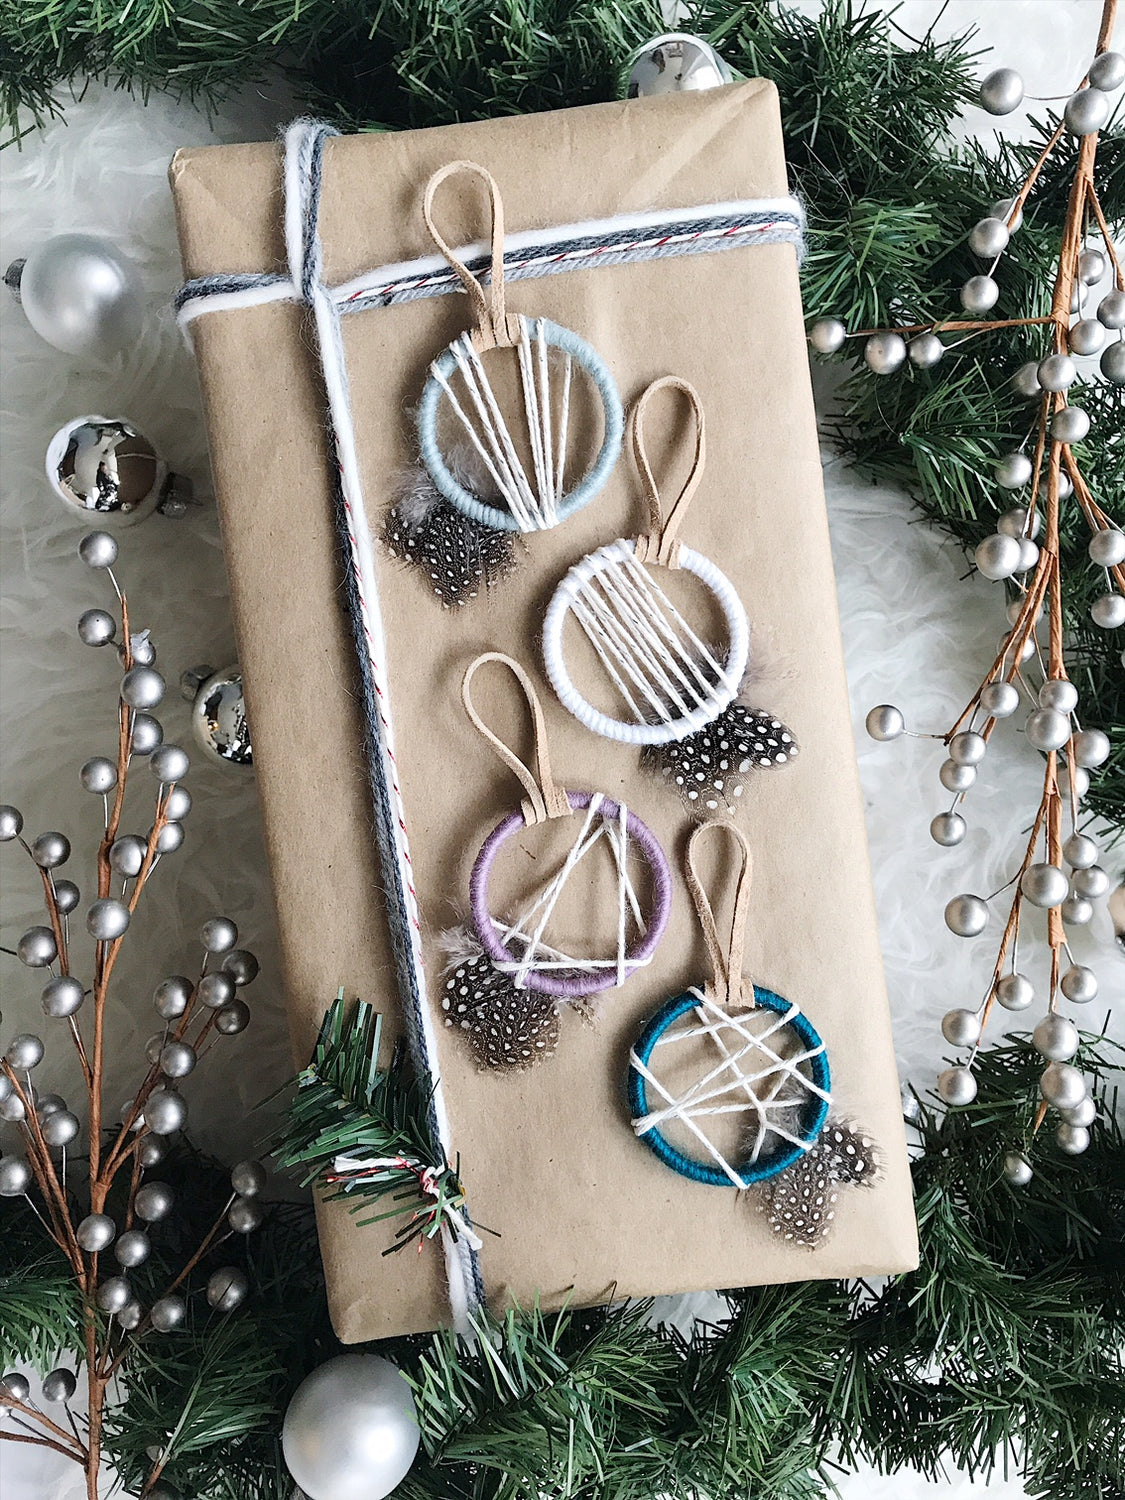 Silver Christmas Tree Decorations by Bast + Bruin